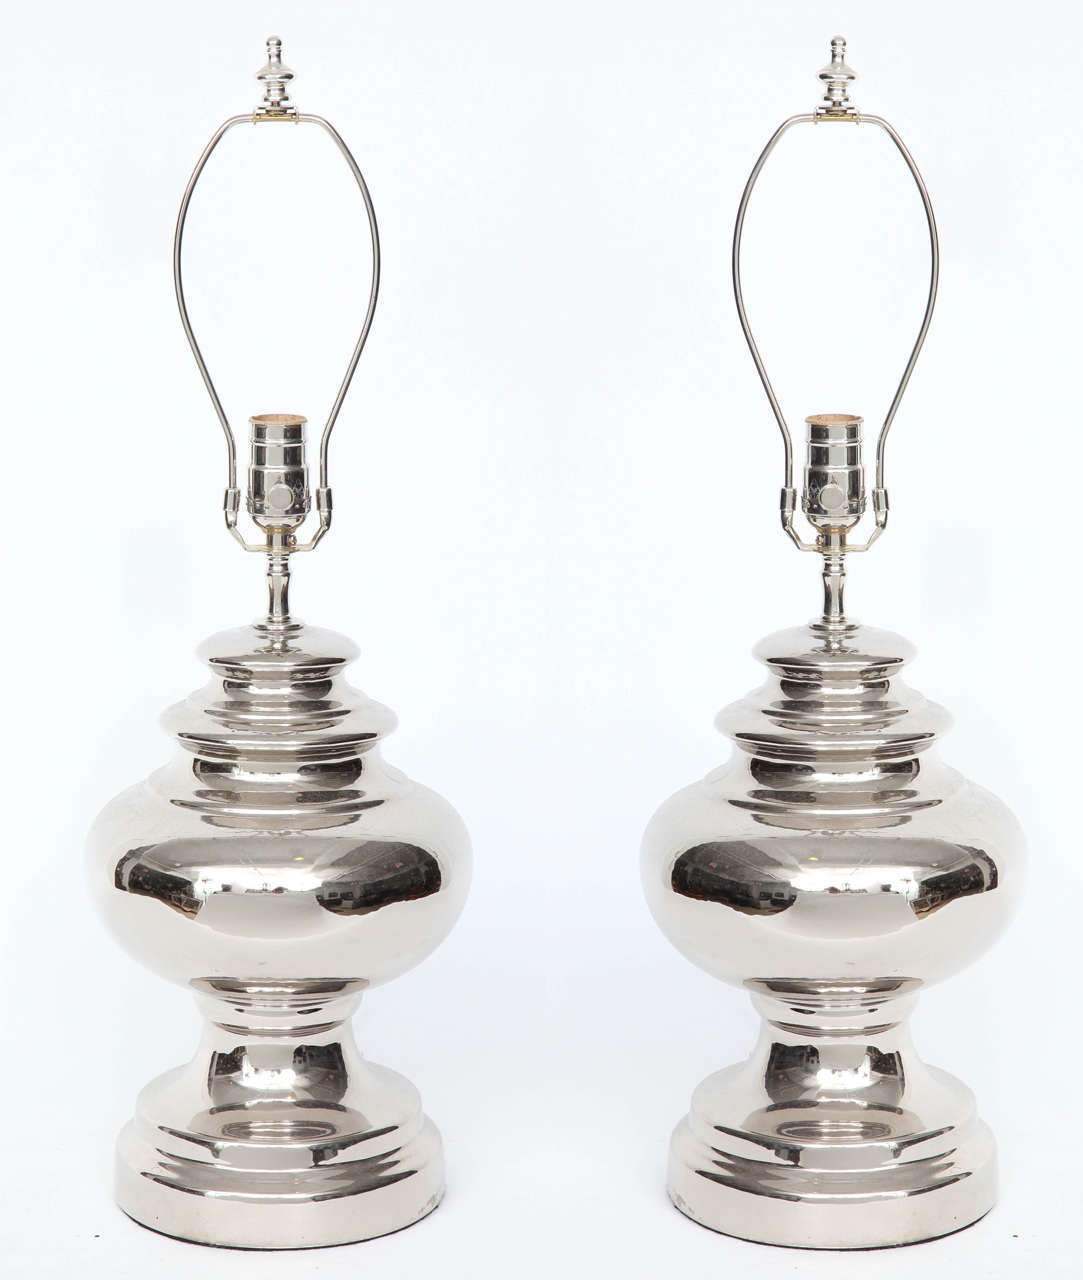 Pair of Scandinavian Modern platinum glazed ceramic lamps by Bitossi for Bergboms. Rewired for use in the USA, 100W max bulb.